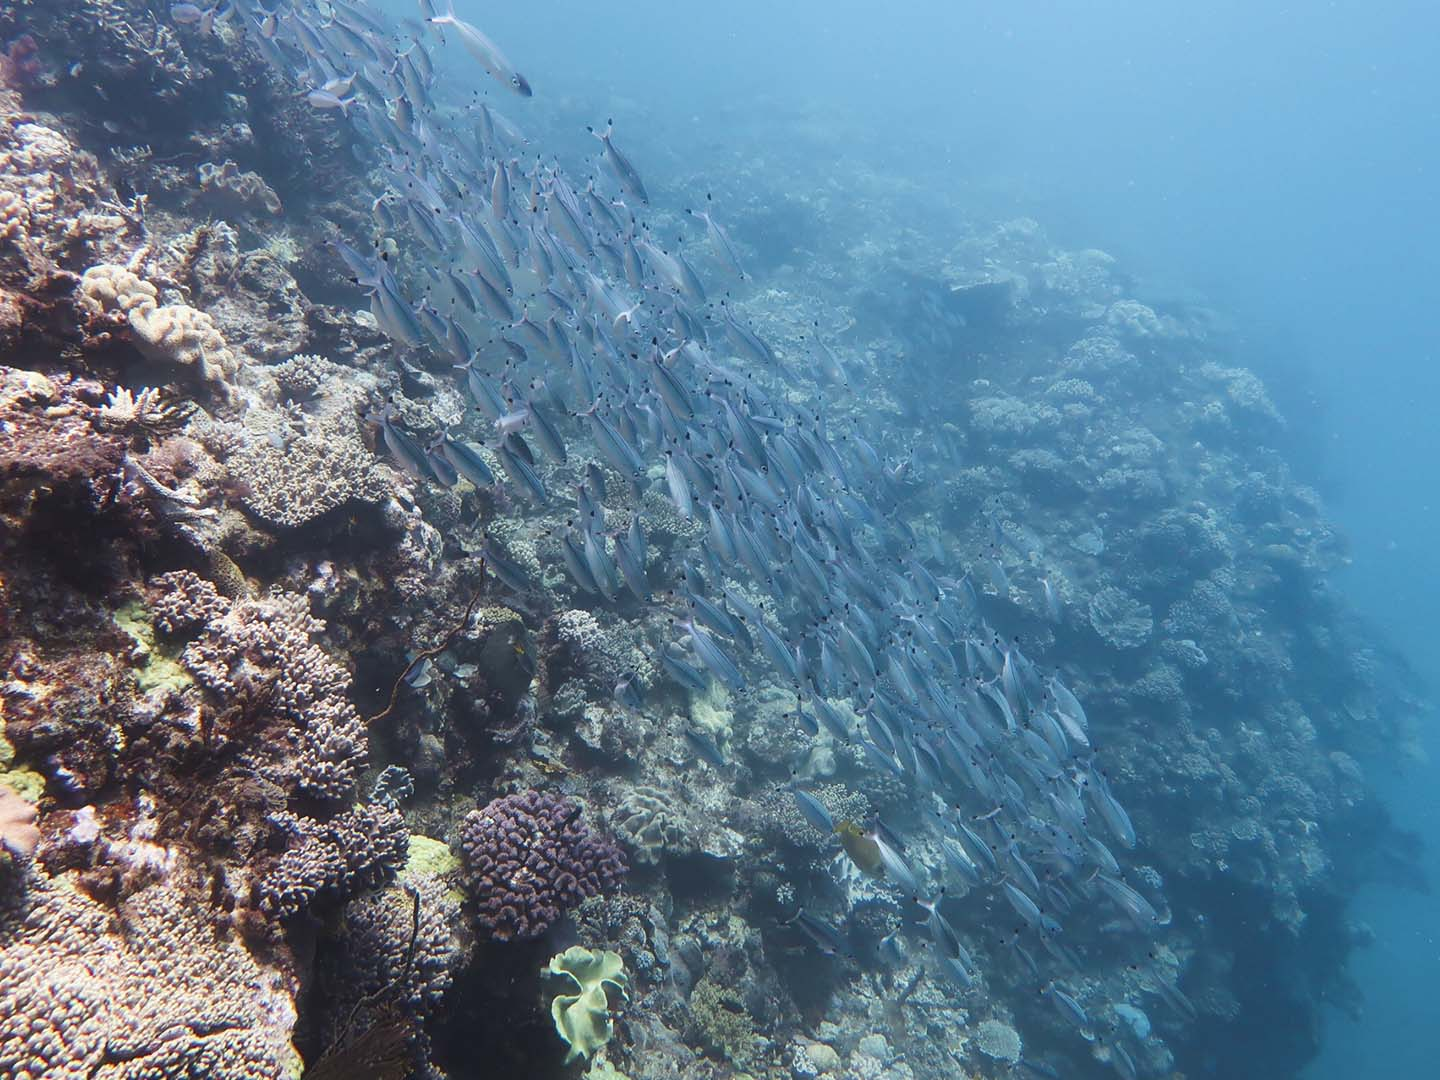 School of fish while scuba diving in the Great Barrier Reef